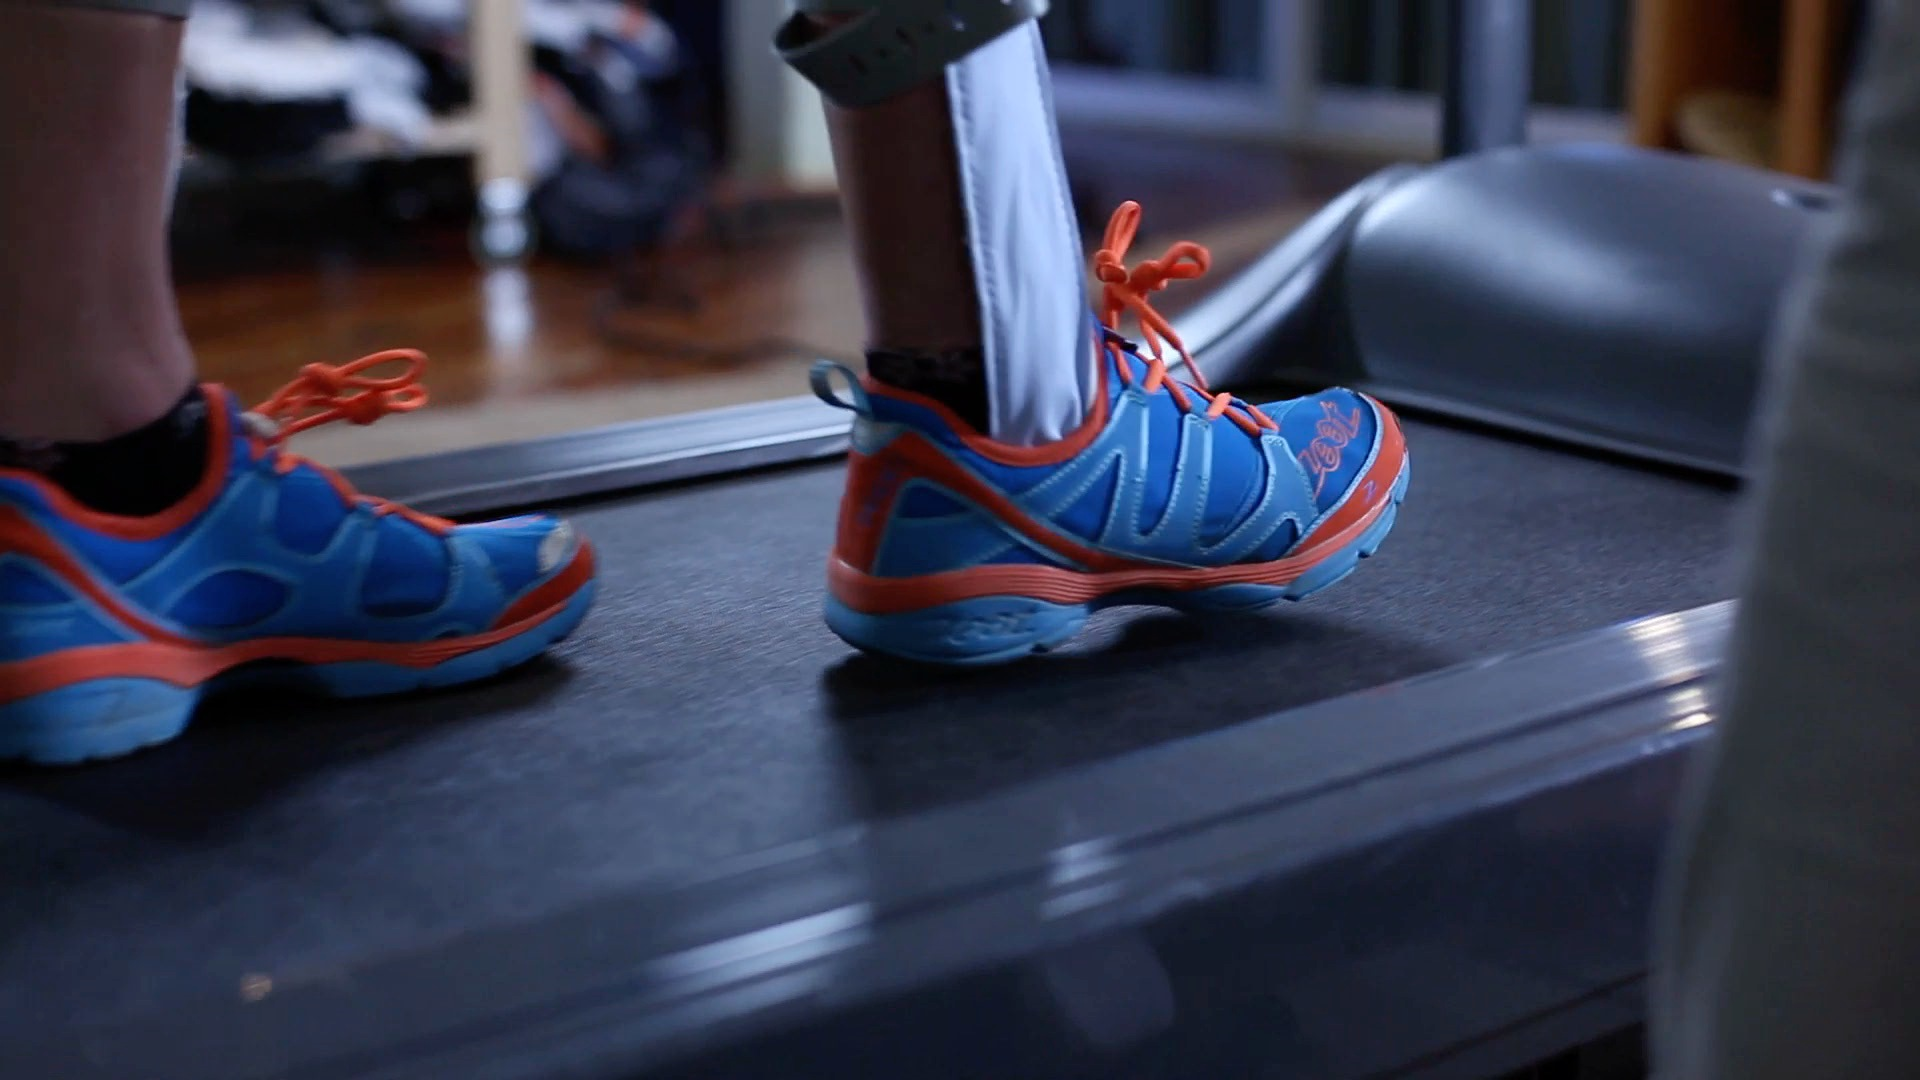 Force Pads on Treadmill